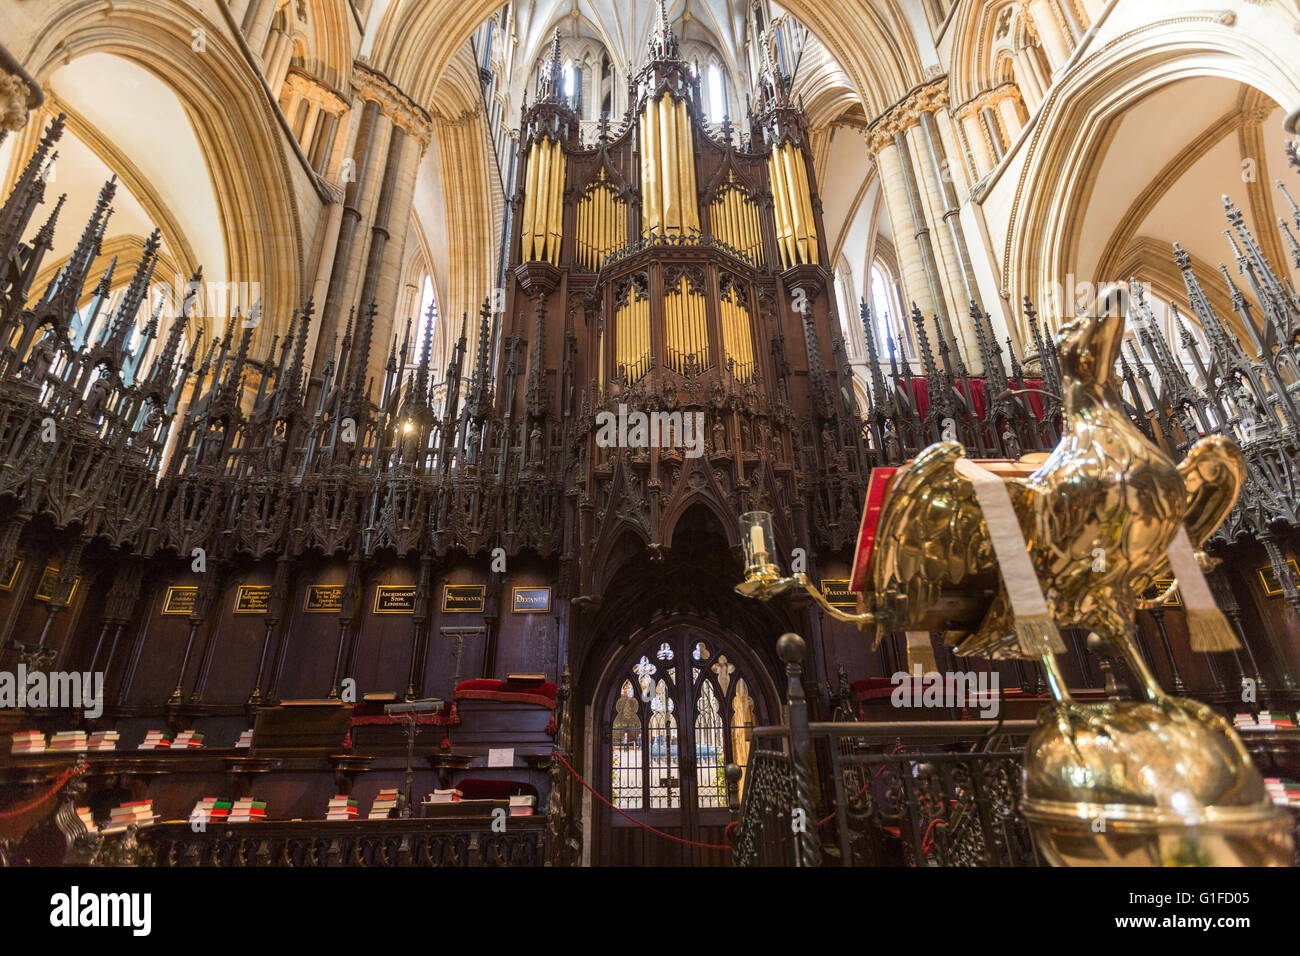 Organ and the eagle Lectern in Lincoln Cathedral  Stalls St Hugh's Choir, Lincoln, Lincolnshire, England, UK - Stock Image